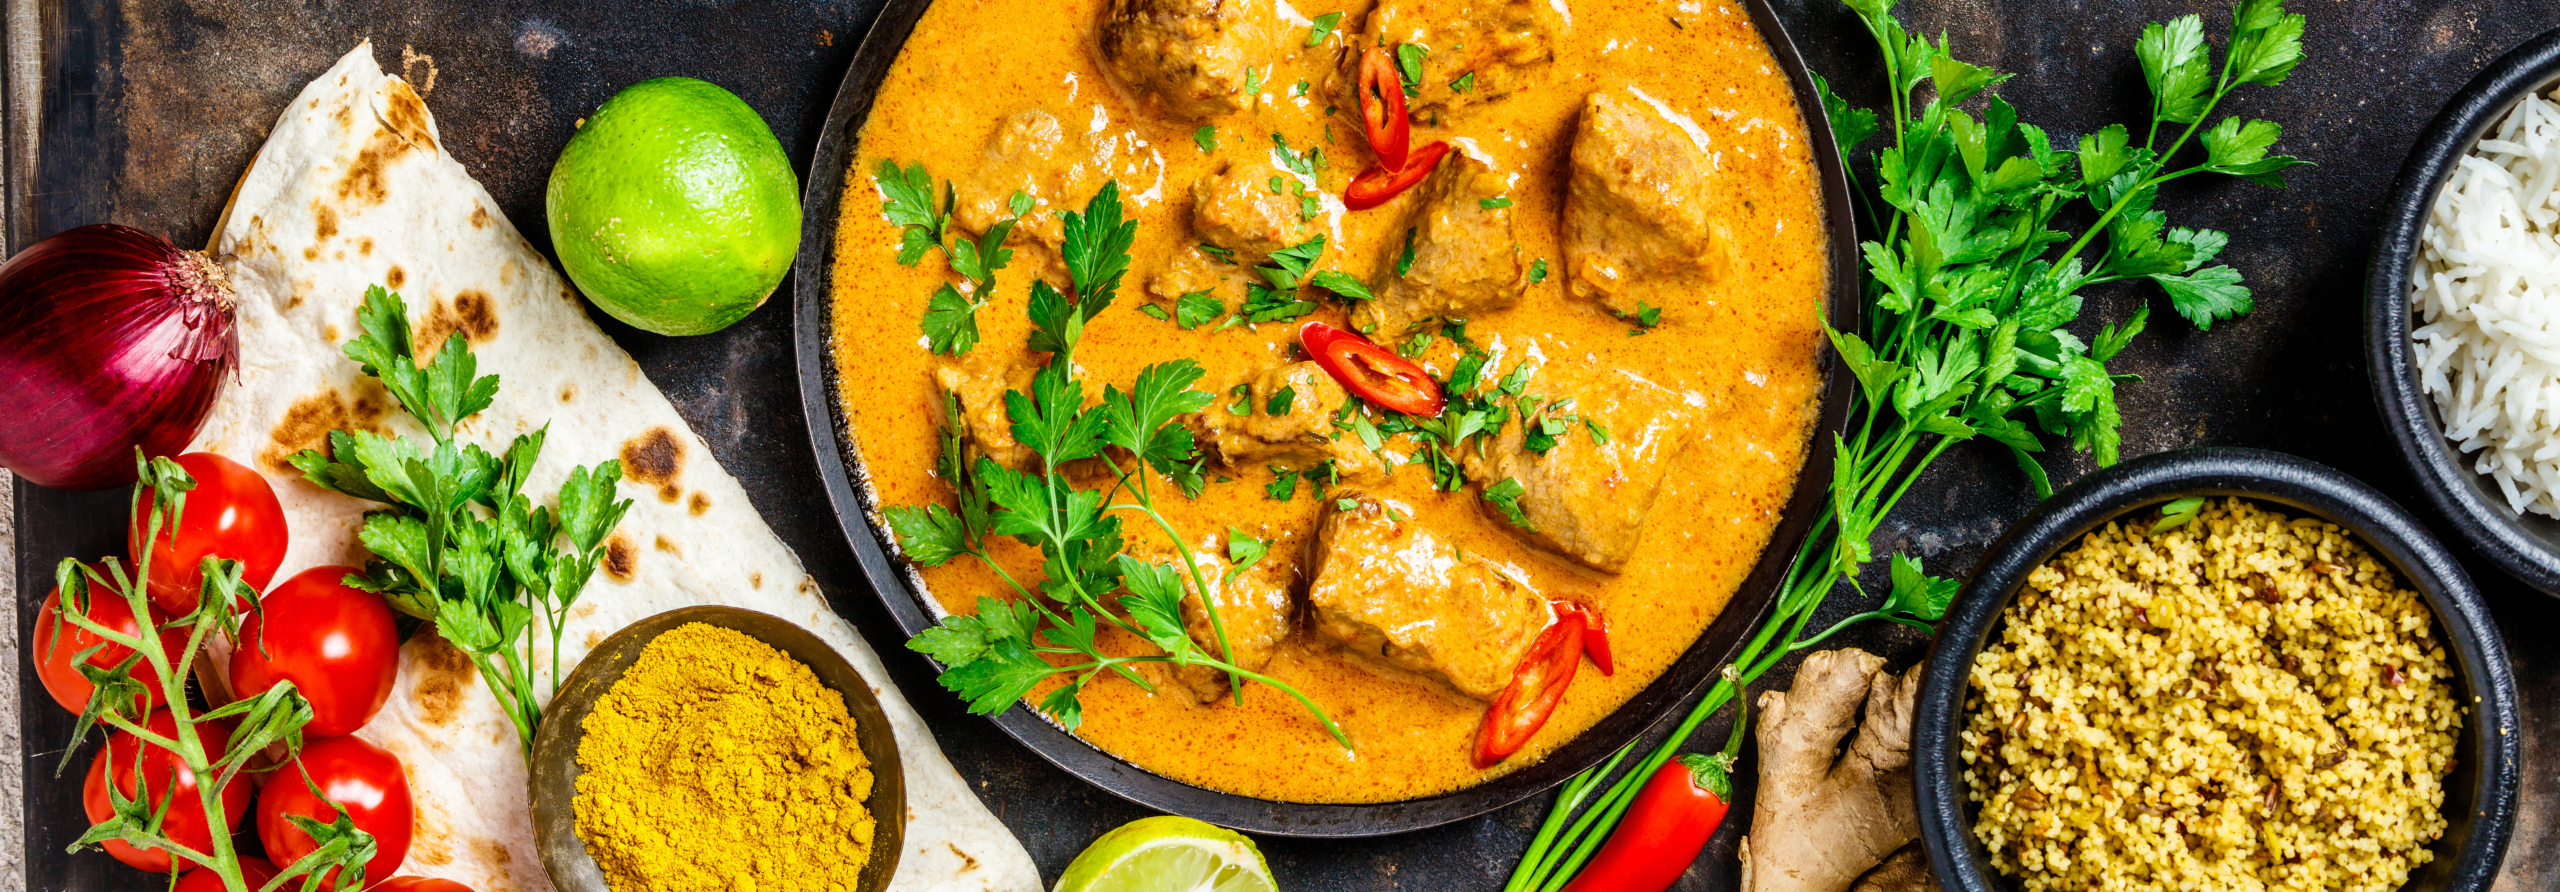 Curry tradizionale thailandese